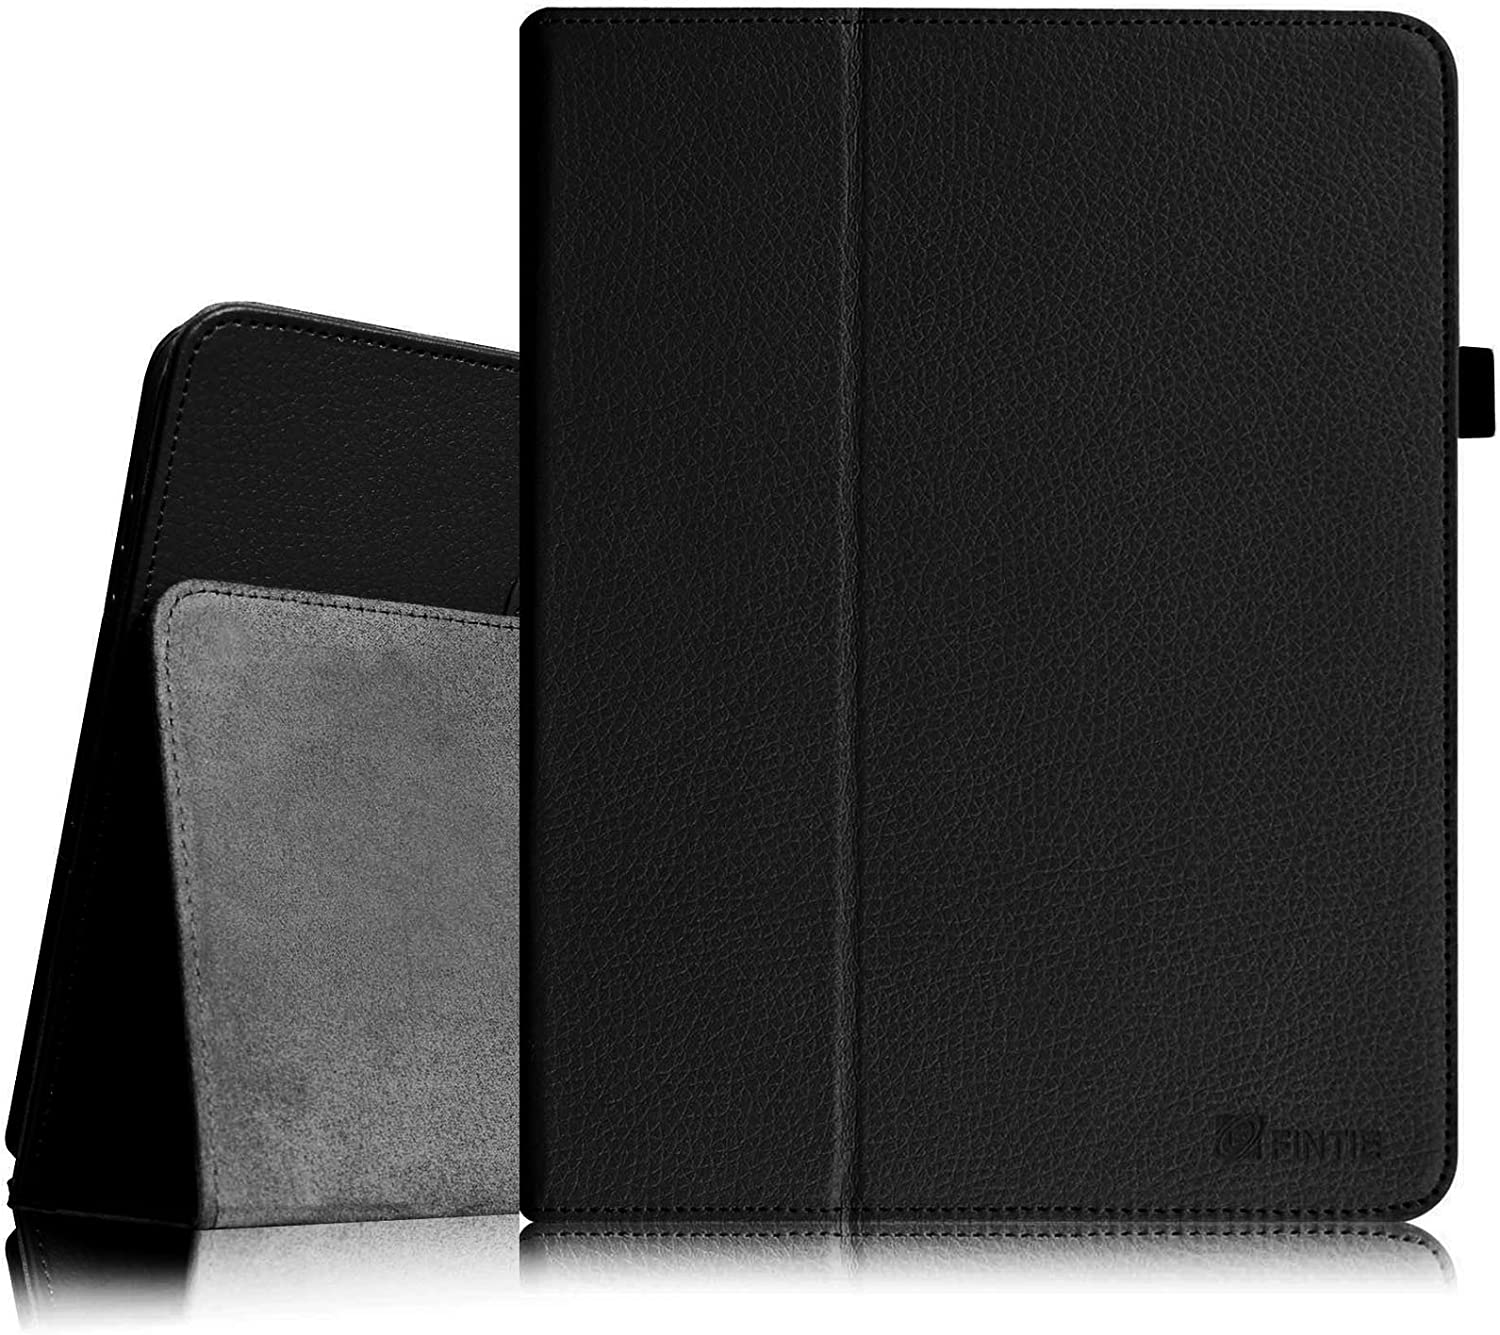 Fintie Folio Case for Original iPad 1st Generation - Slim Fit Vegan Leather Stand Cover with Stylus Holder for iPad 1st Generation 2010, Black